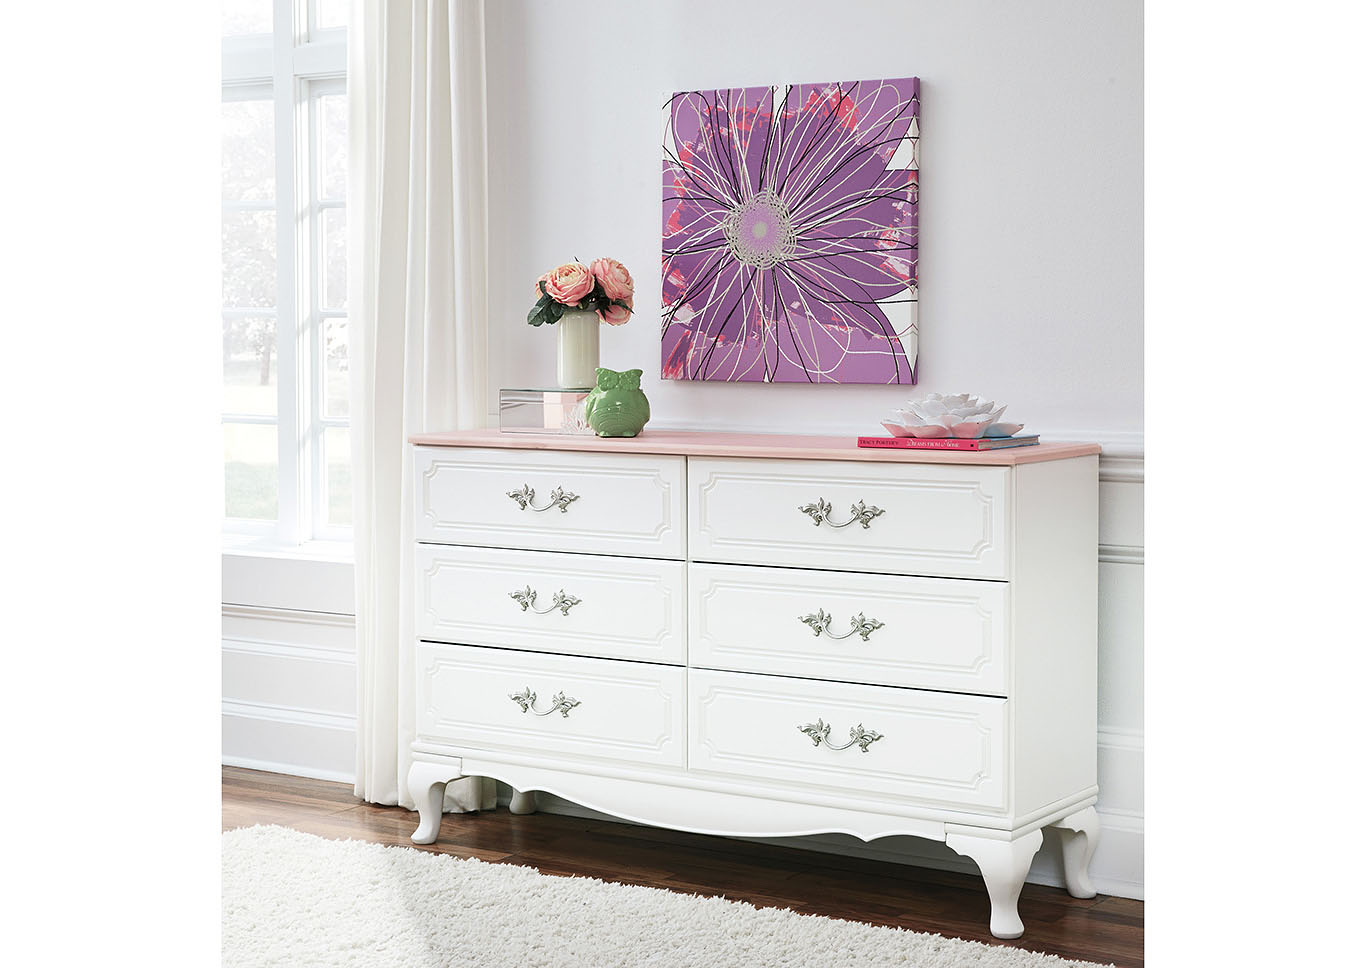 Laddi White/Pink Dresser,Signature Design By Ashley